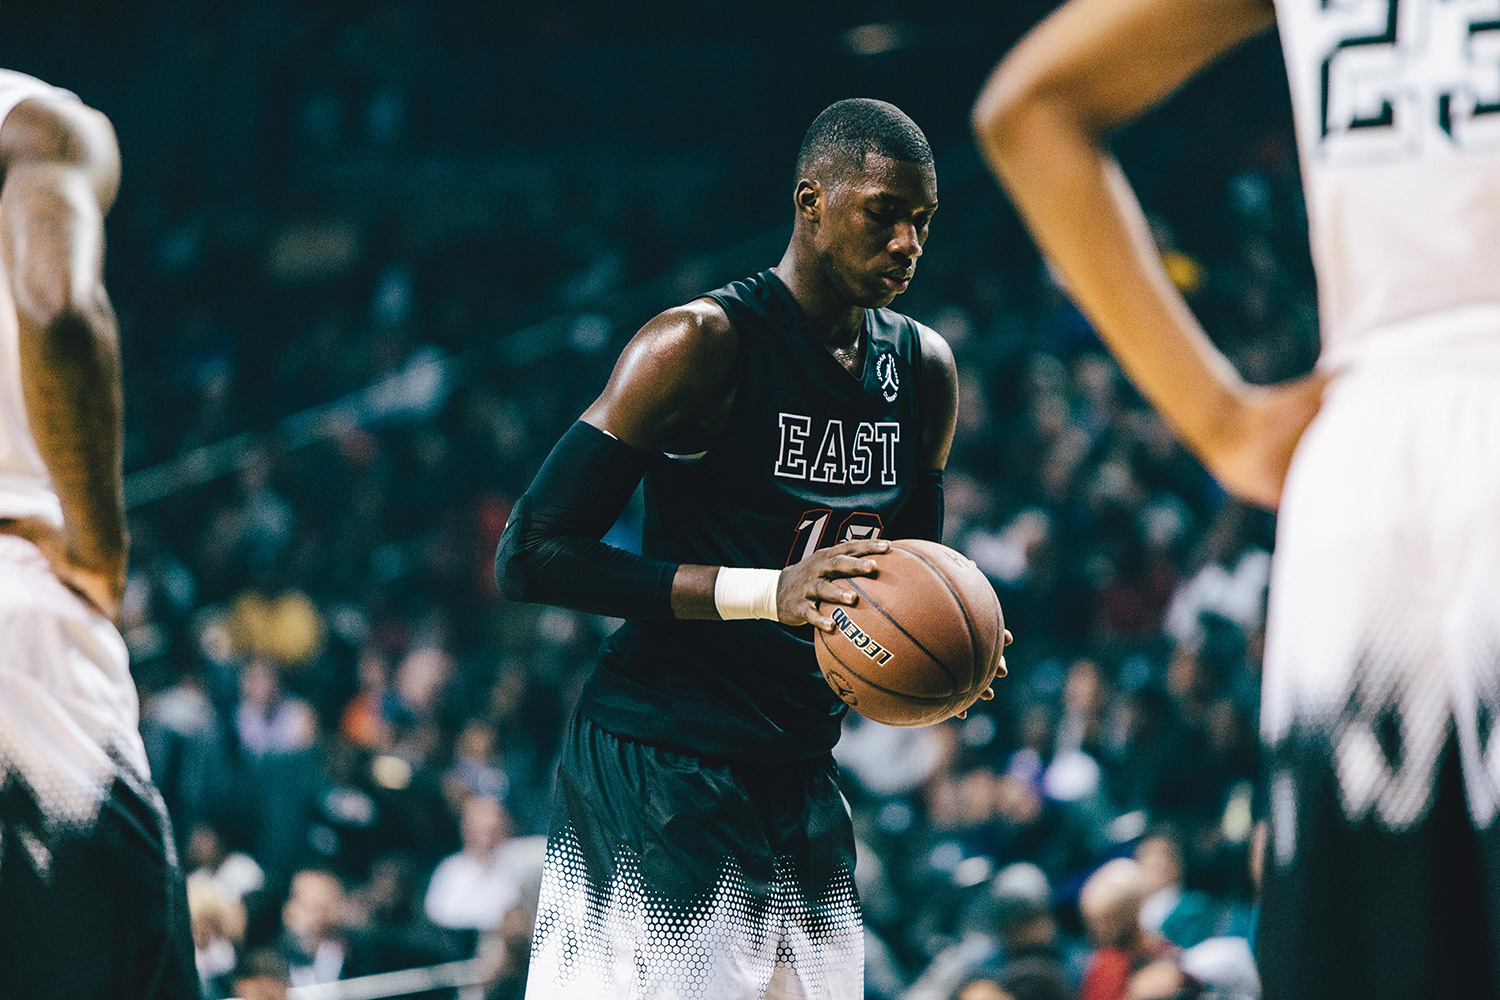 Cheikh Diallo goes through the motions of shooting free throws during the Jordan Brand Classic.